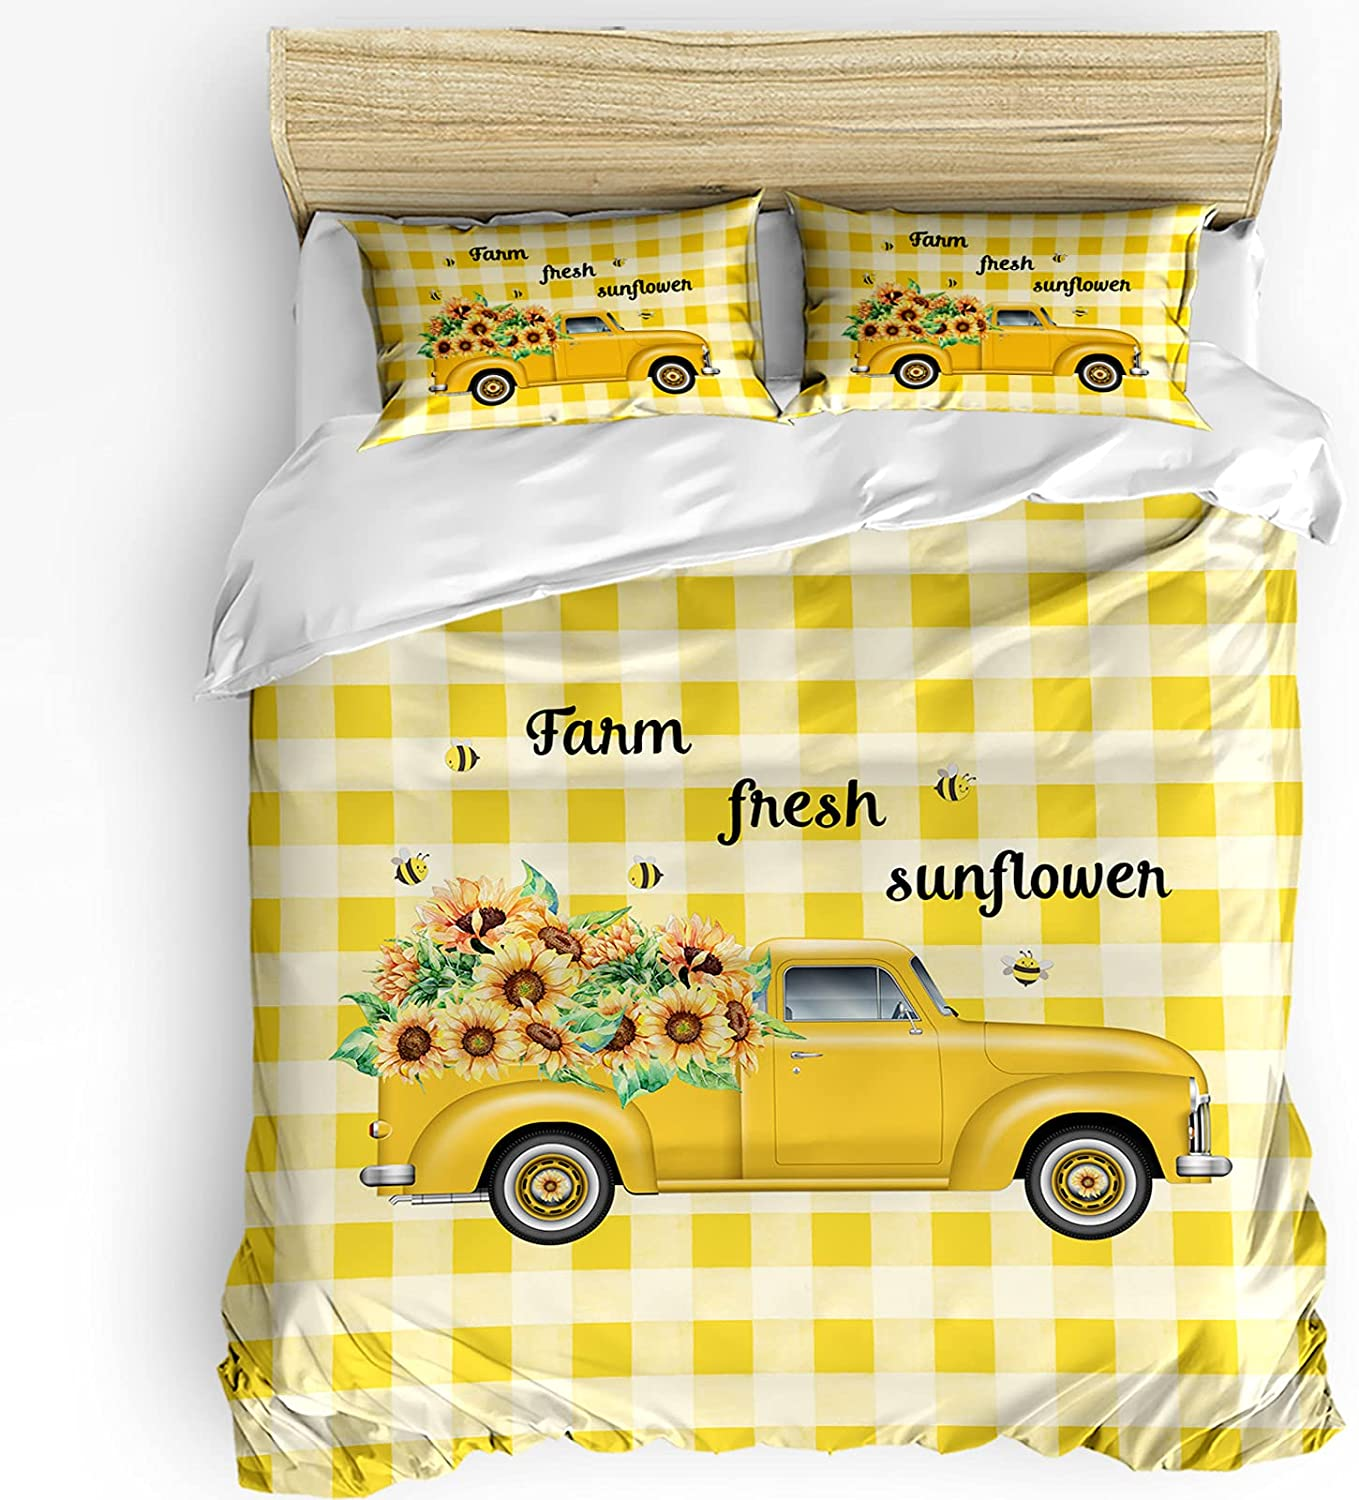 Floral gift Duvet Cover National products Set 3 Pieces Microfiber Breathable Polyester